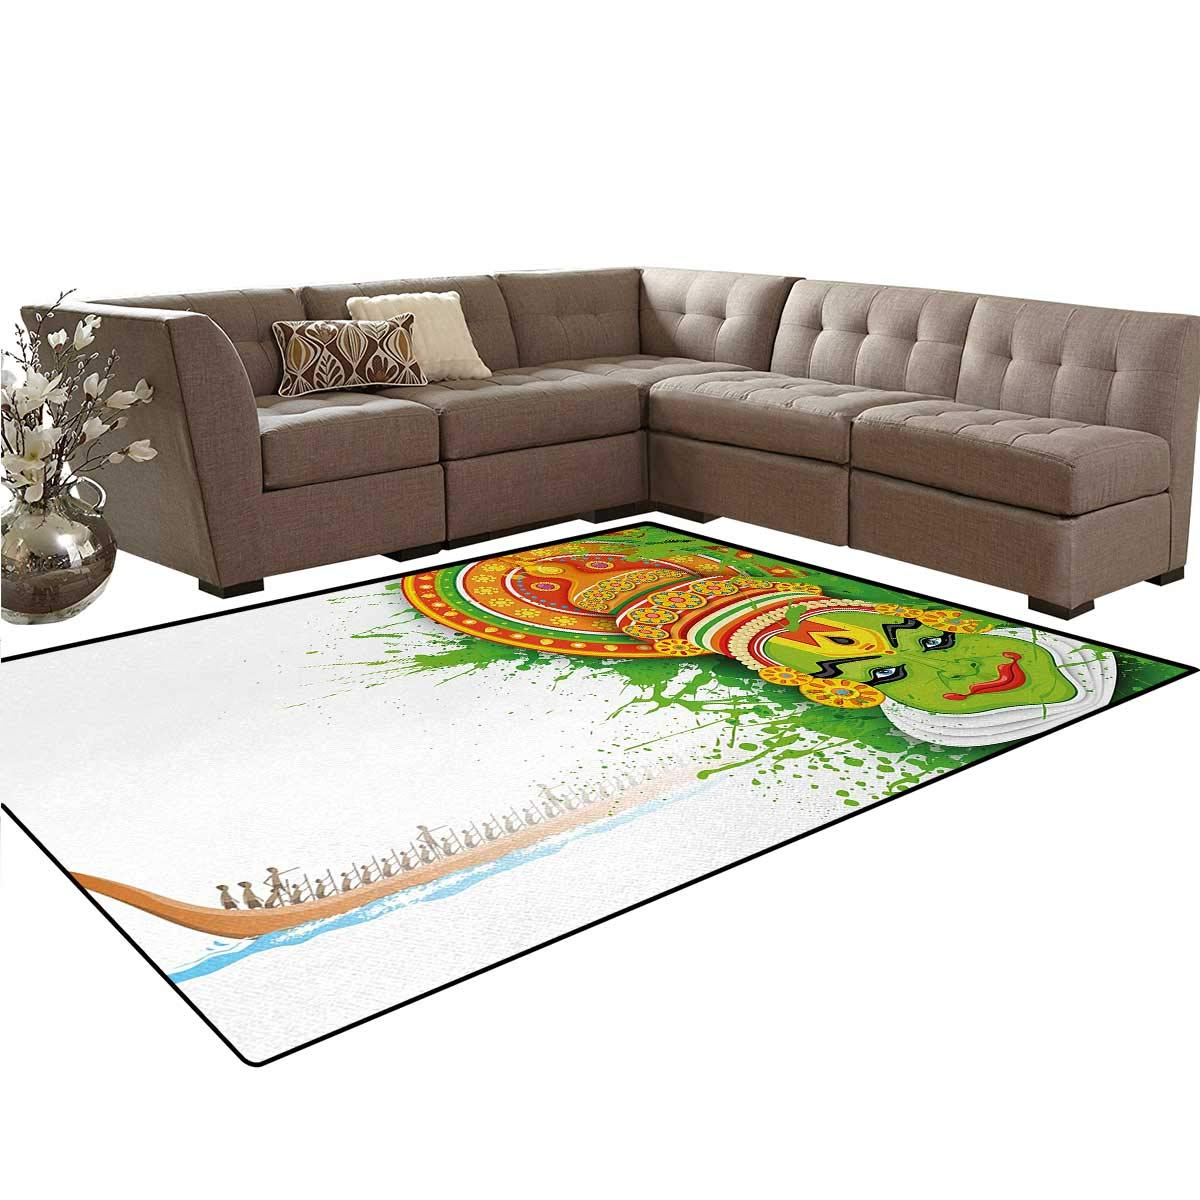 Asian,Floor Mat,Ritualistic Ethnic Asian Ceremonial Dance Figure and Boat on River Illustration,Living Dining Room Bedroom Hallway Office Carpet,Green and White,5'x6'